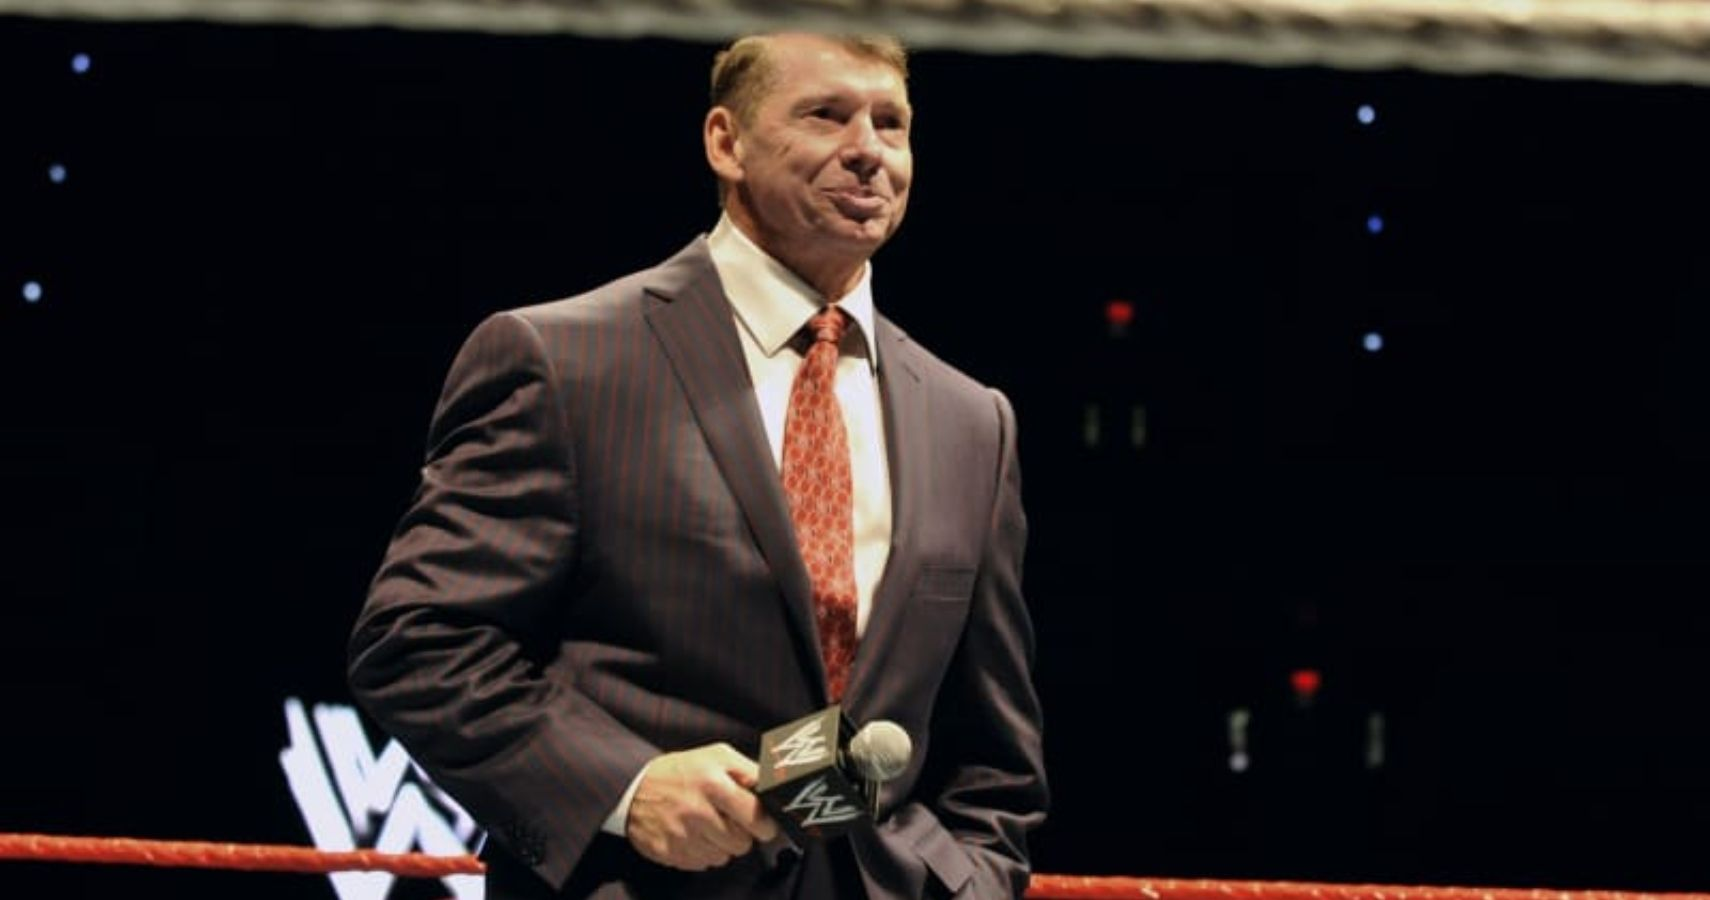 Vince McMahon Had Plans To Rejig WWE's PPV Schedule